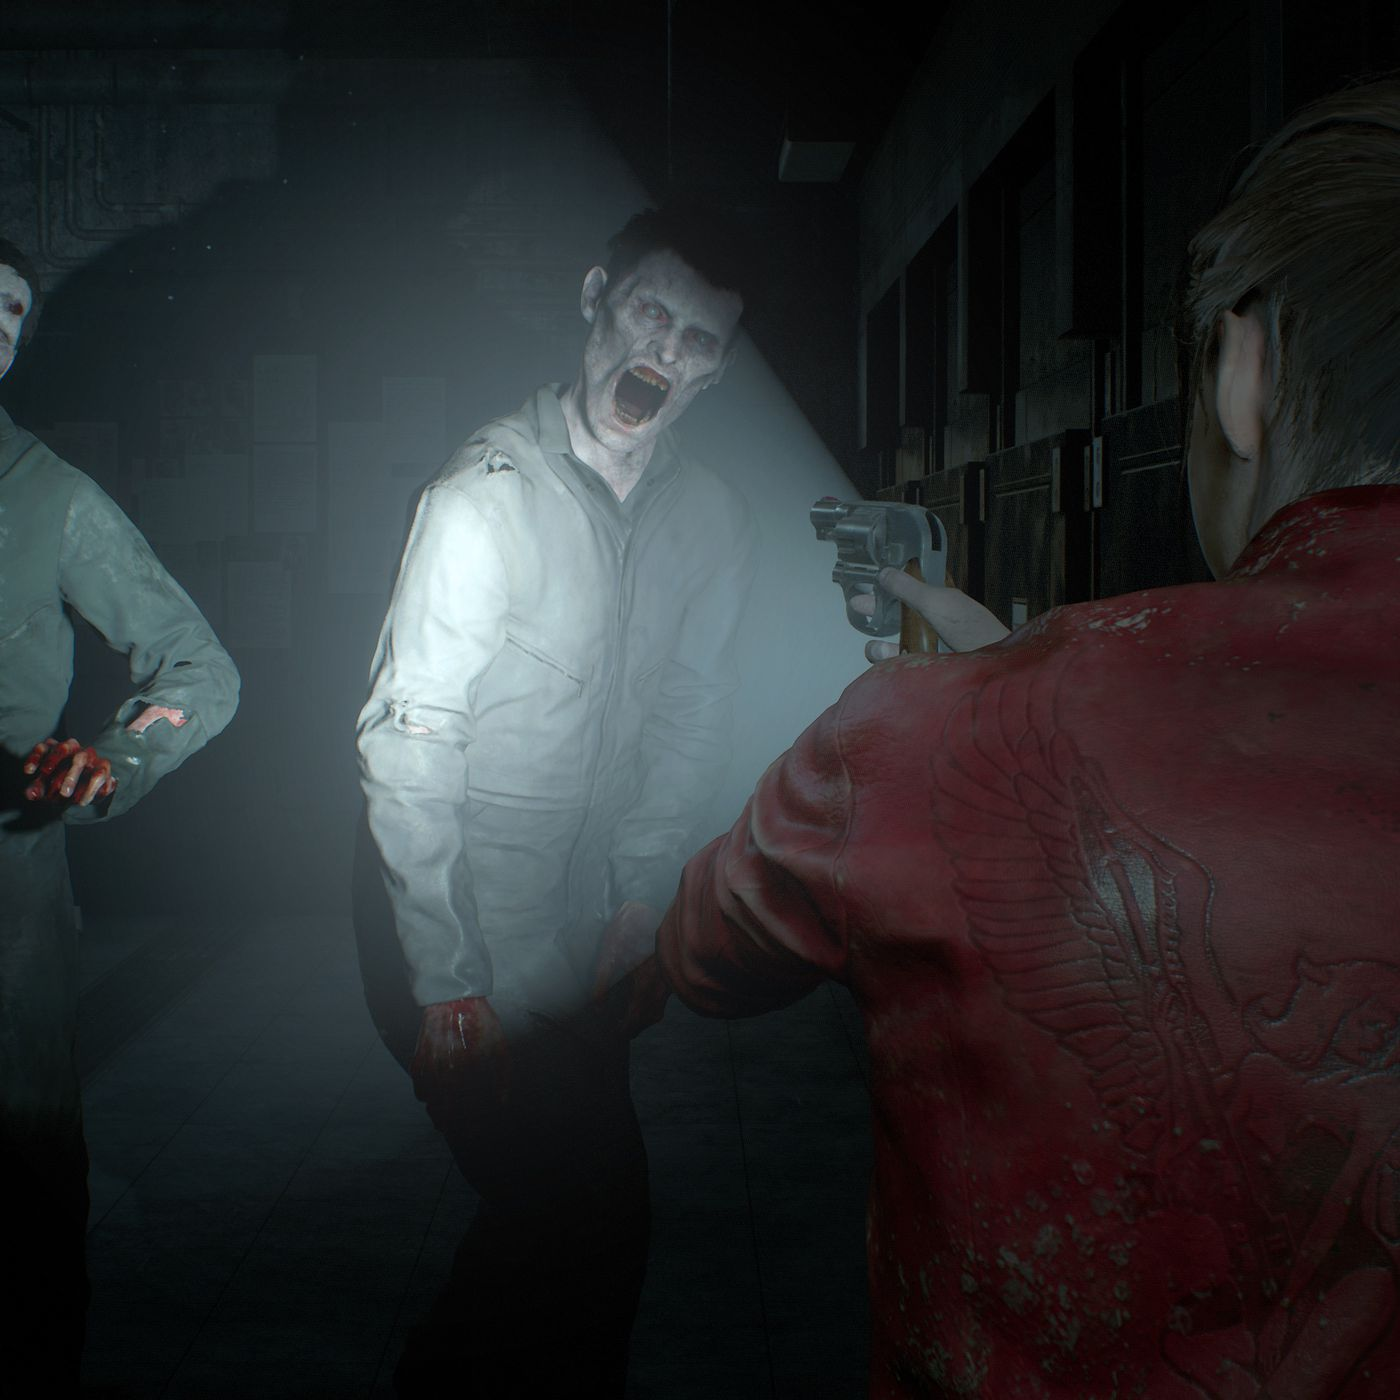 Resident Evil 2 Remake Producer On How Capcom Updated The Game For